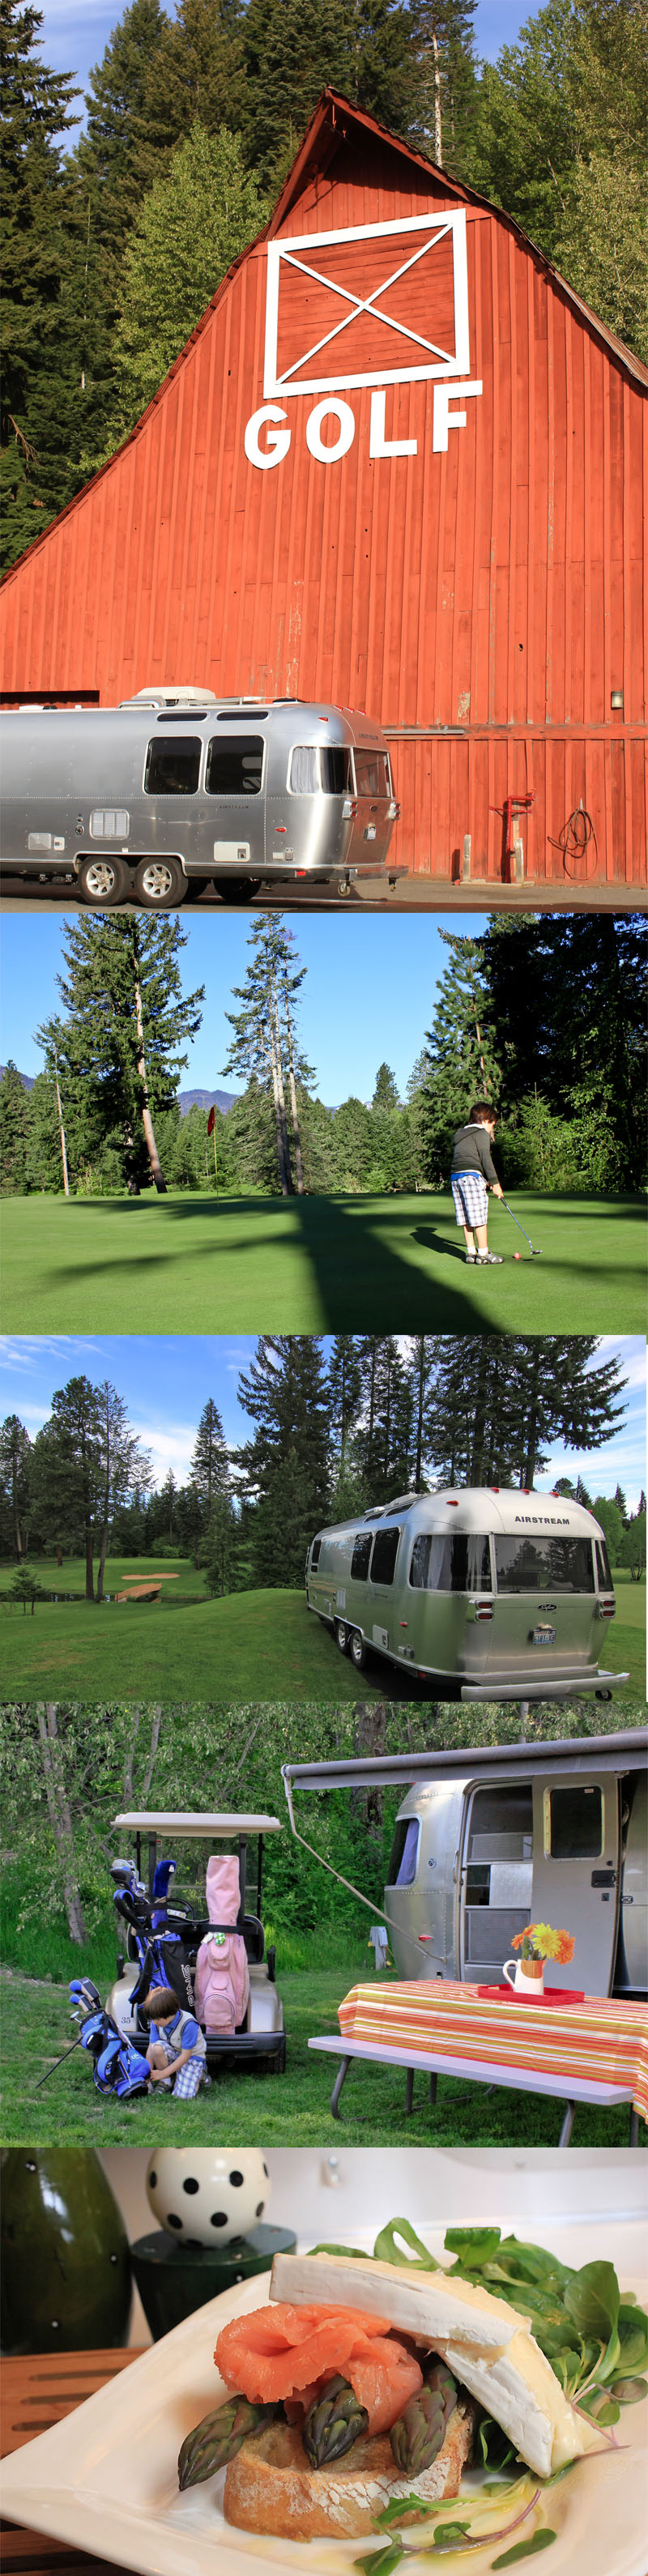 SunCountry Golf in Washington State